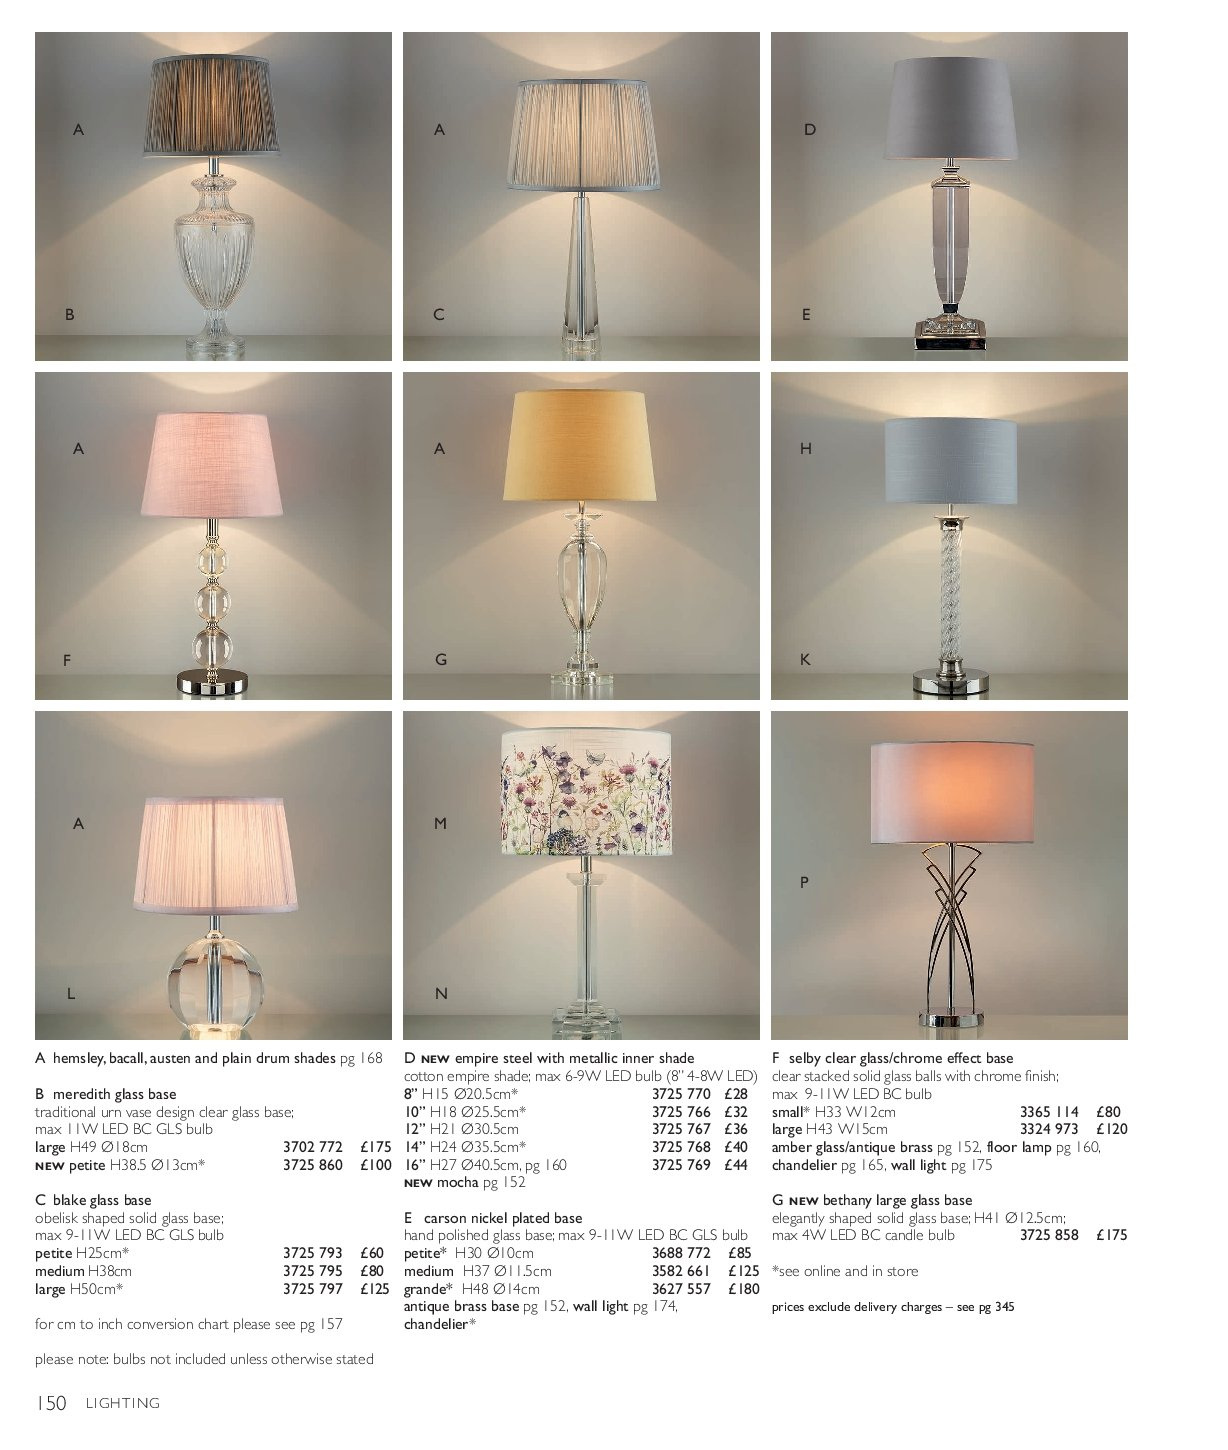 Selby Glass Ball Lamp at LAURA ASHLEY